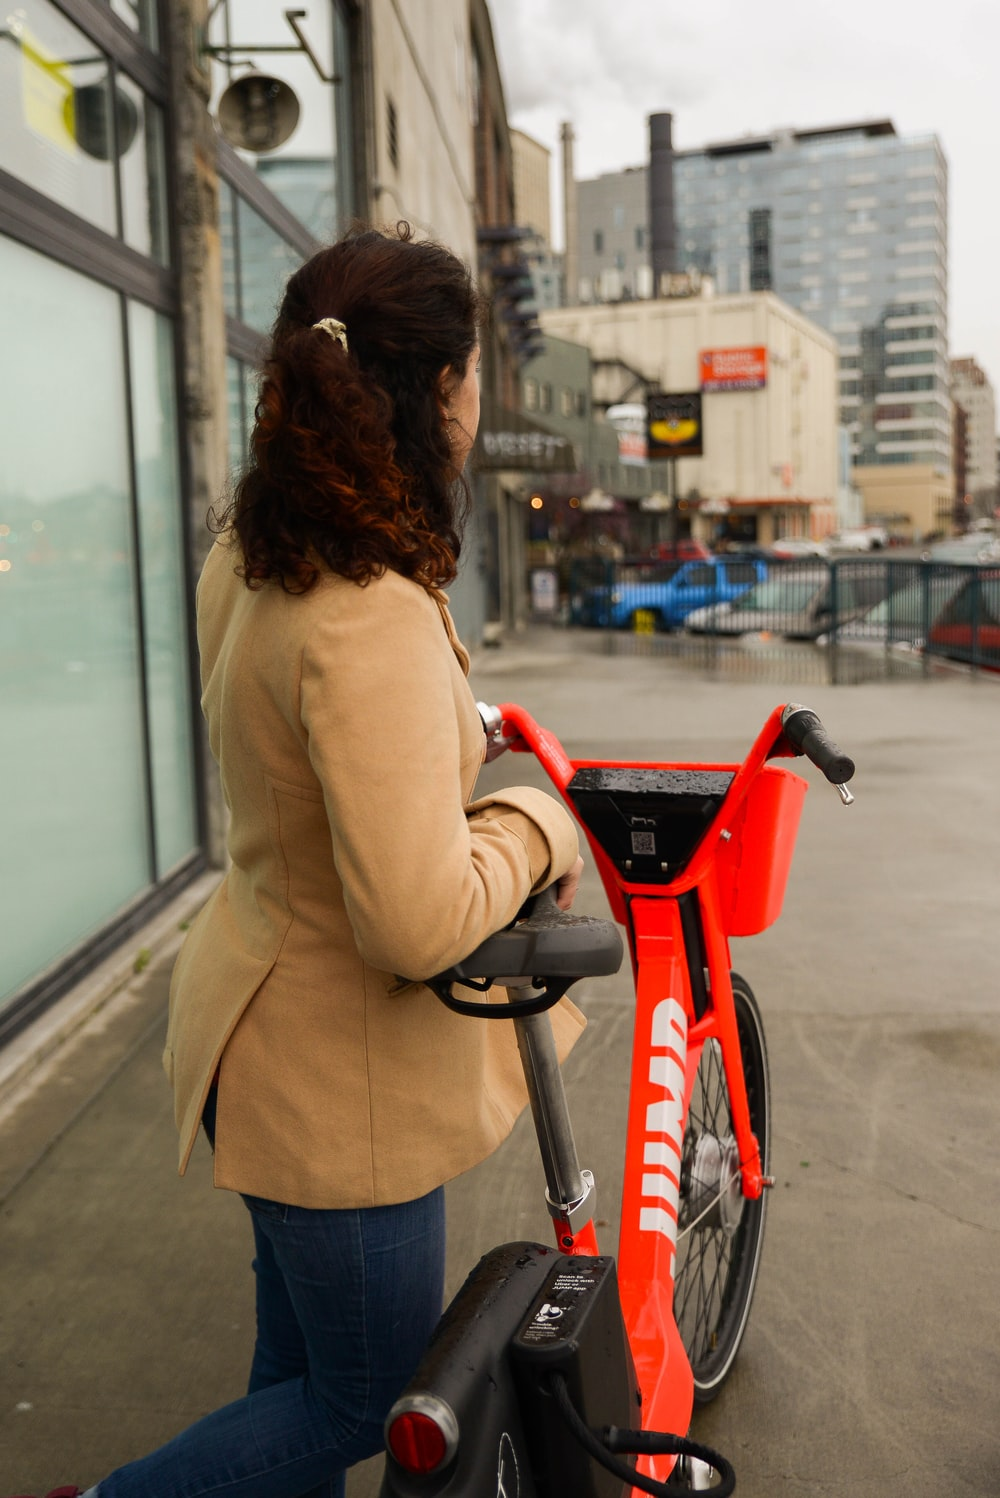 woman in beige coat riding red bicycle during daytime